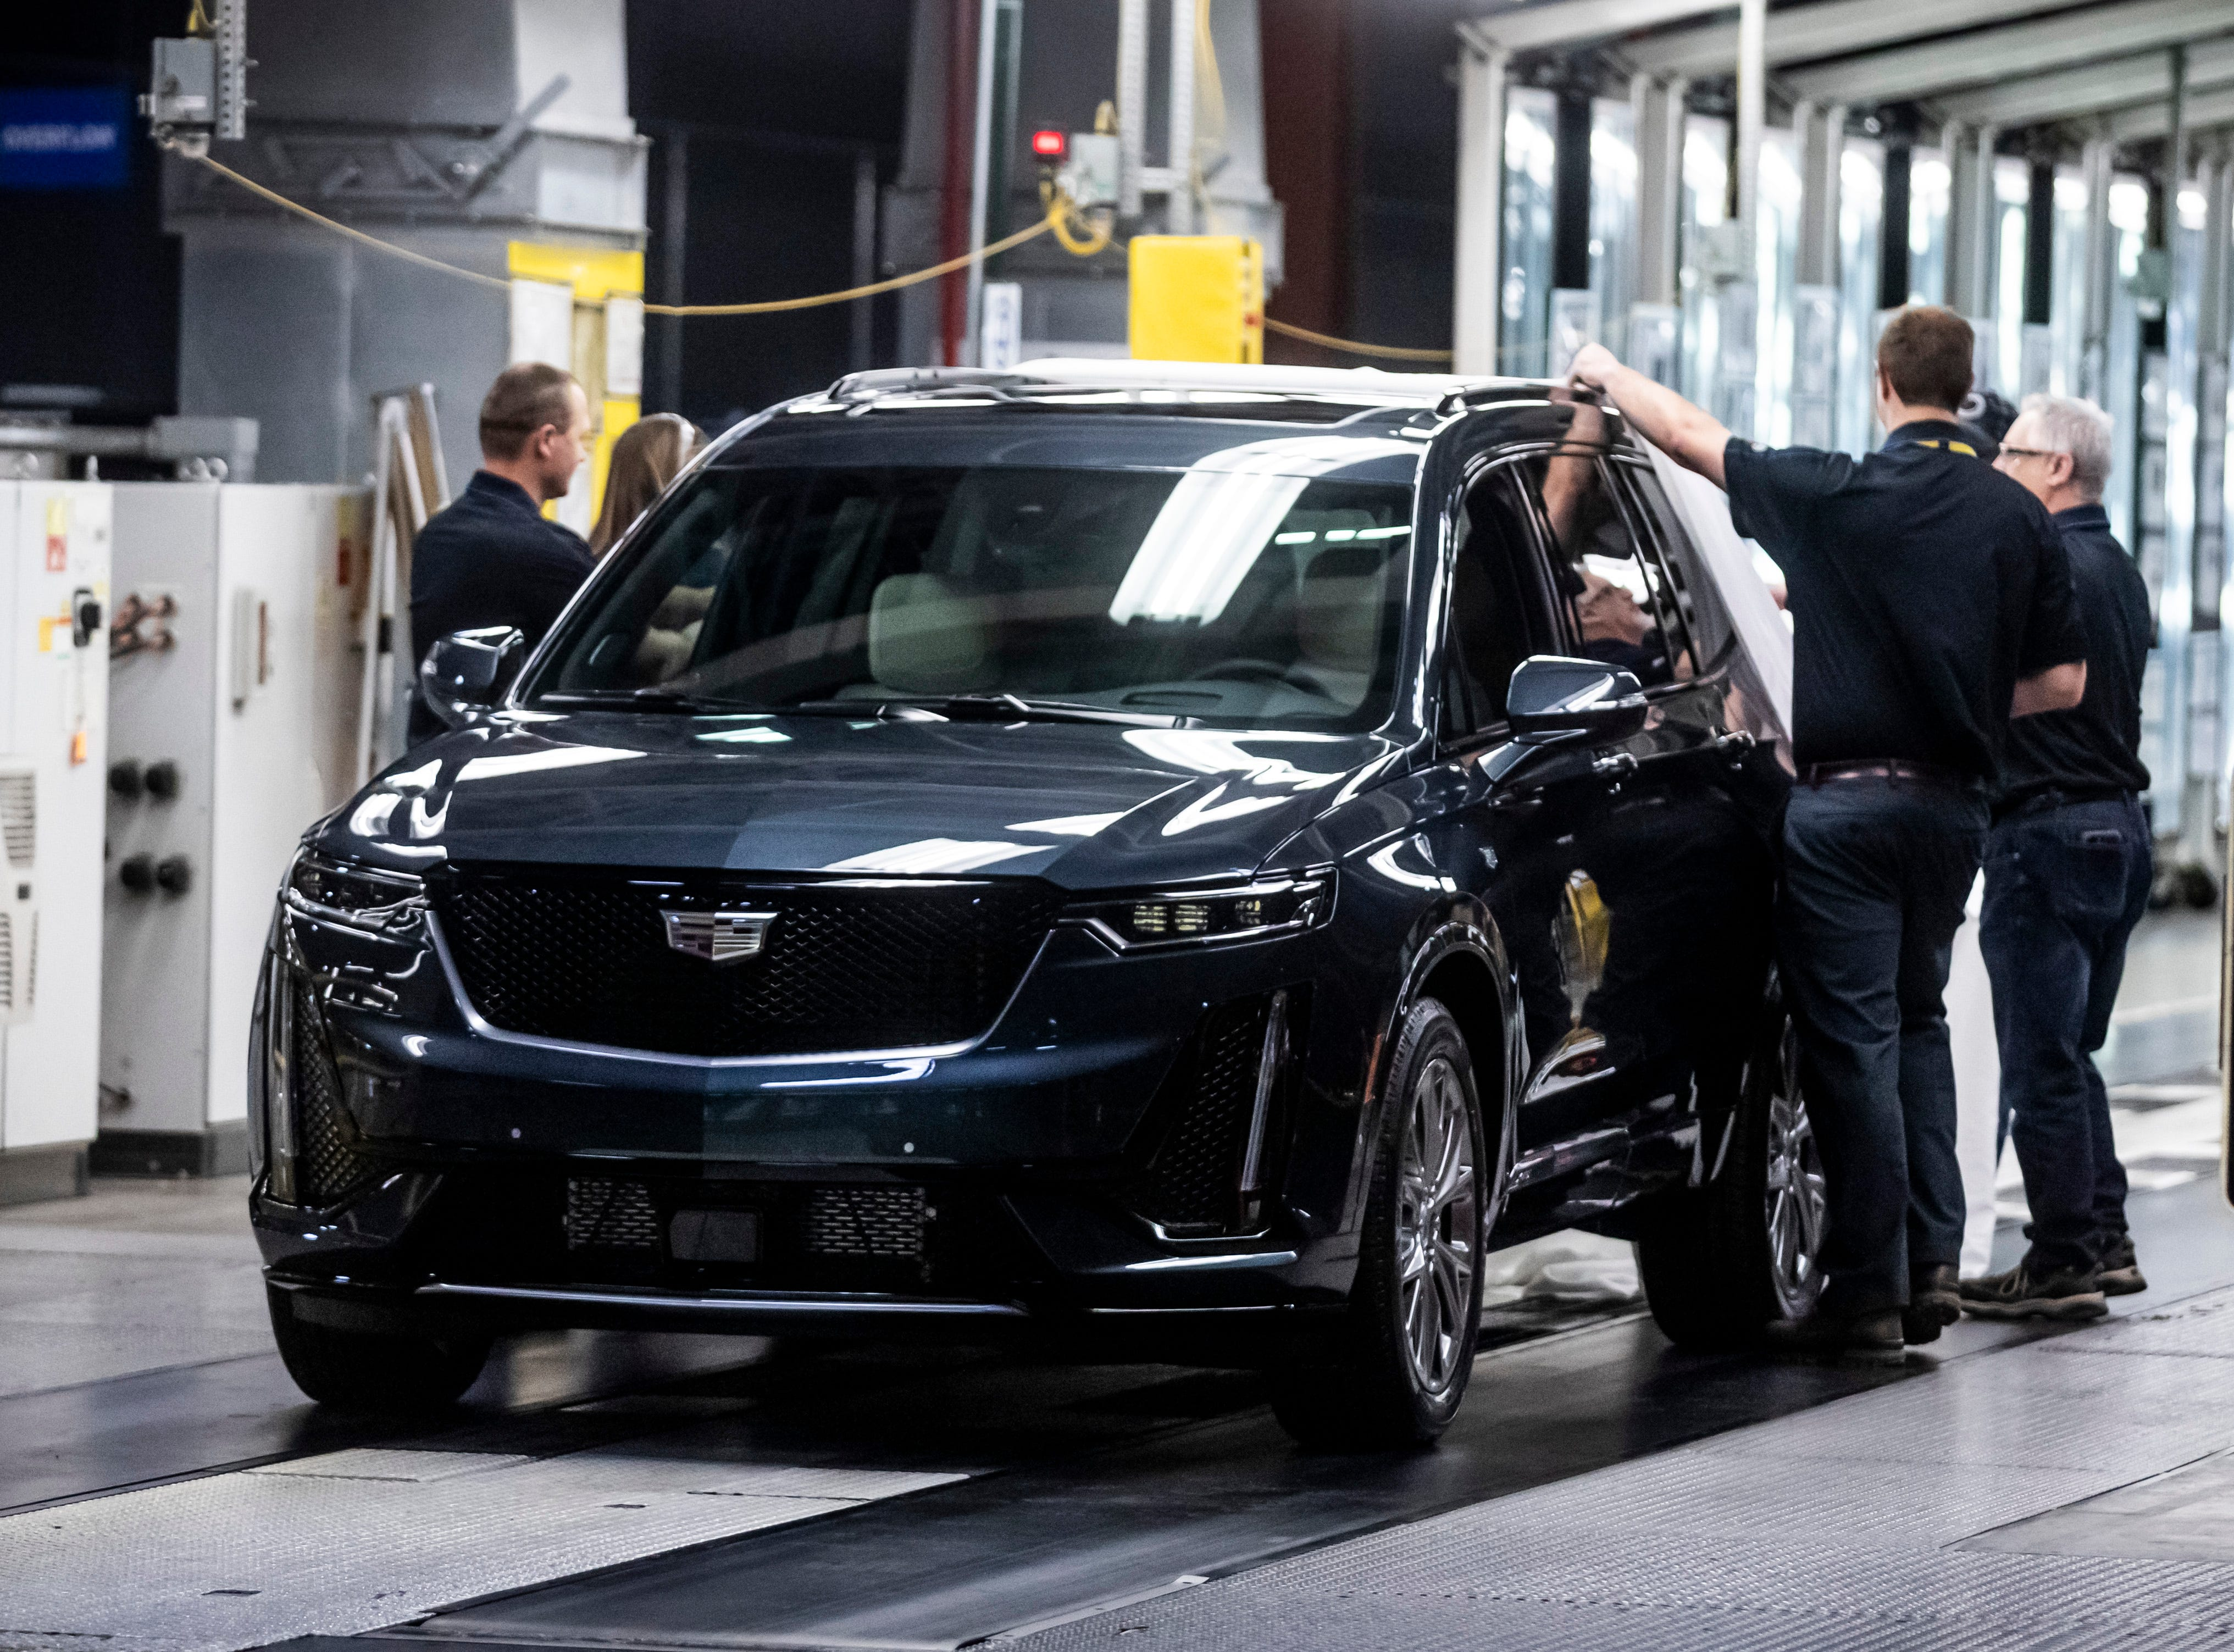 Gm Rolls Out Cadillac Xt6 At Tennessee Plant Plans Cadillac Comeback